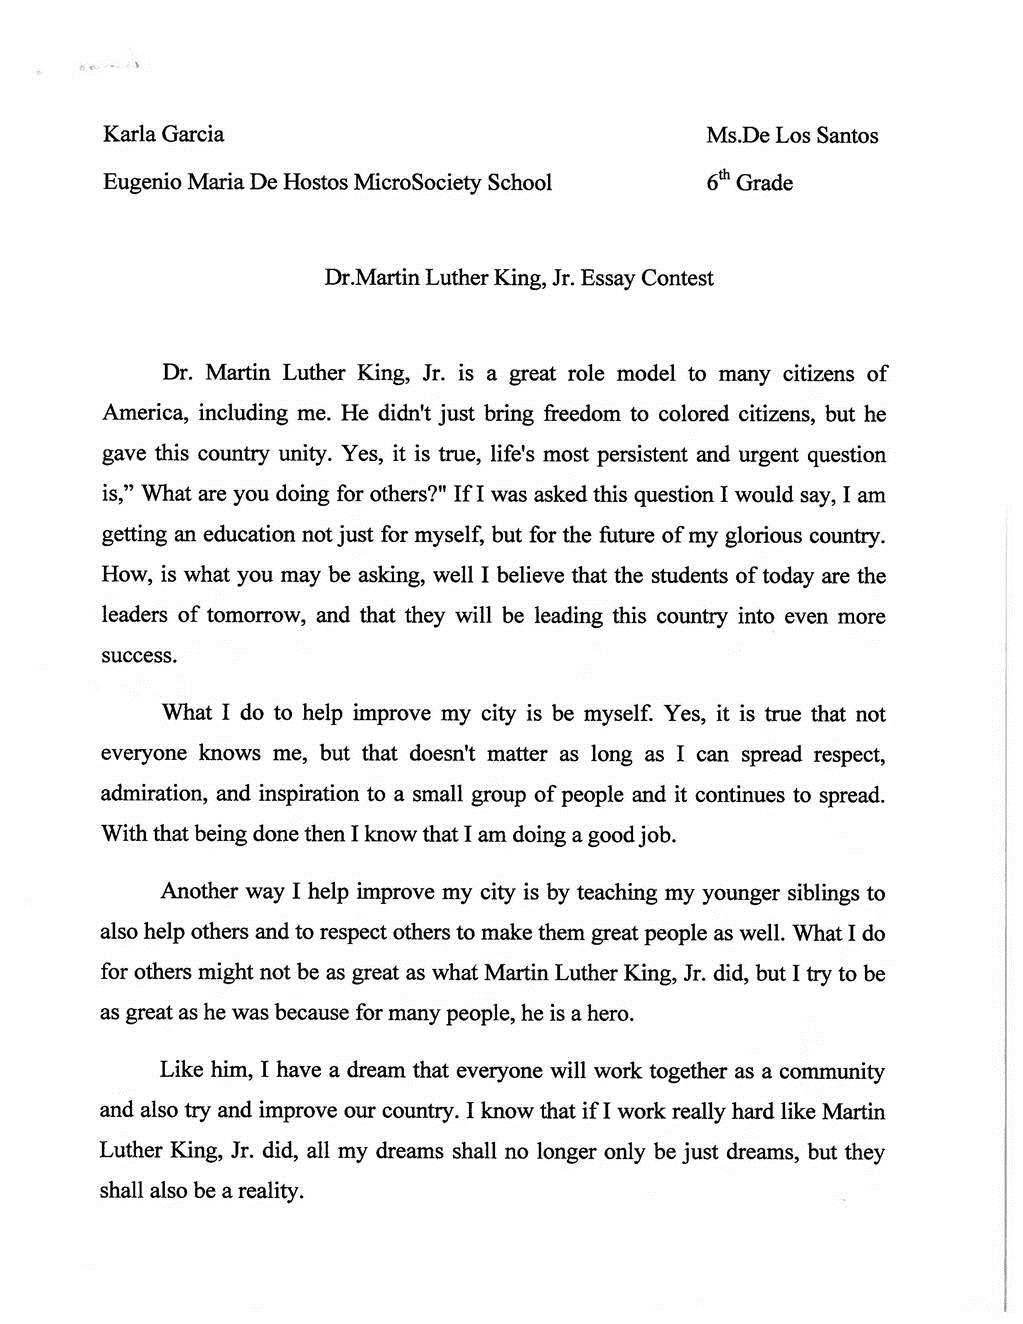 mlk essays okc martin luther king holiday coalition news and  mlk essays essay describing mlk as a historical leader the martin essays about martin luther king